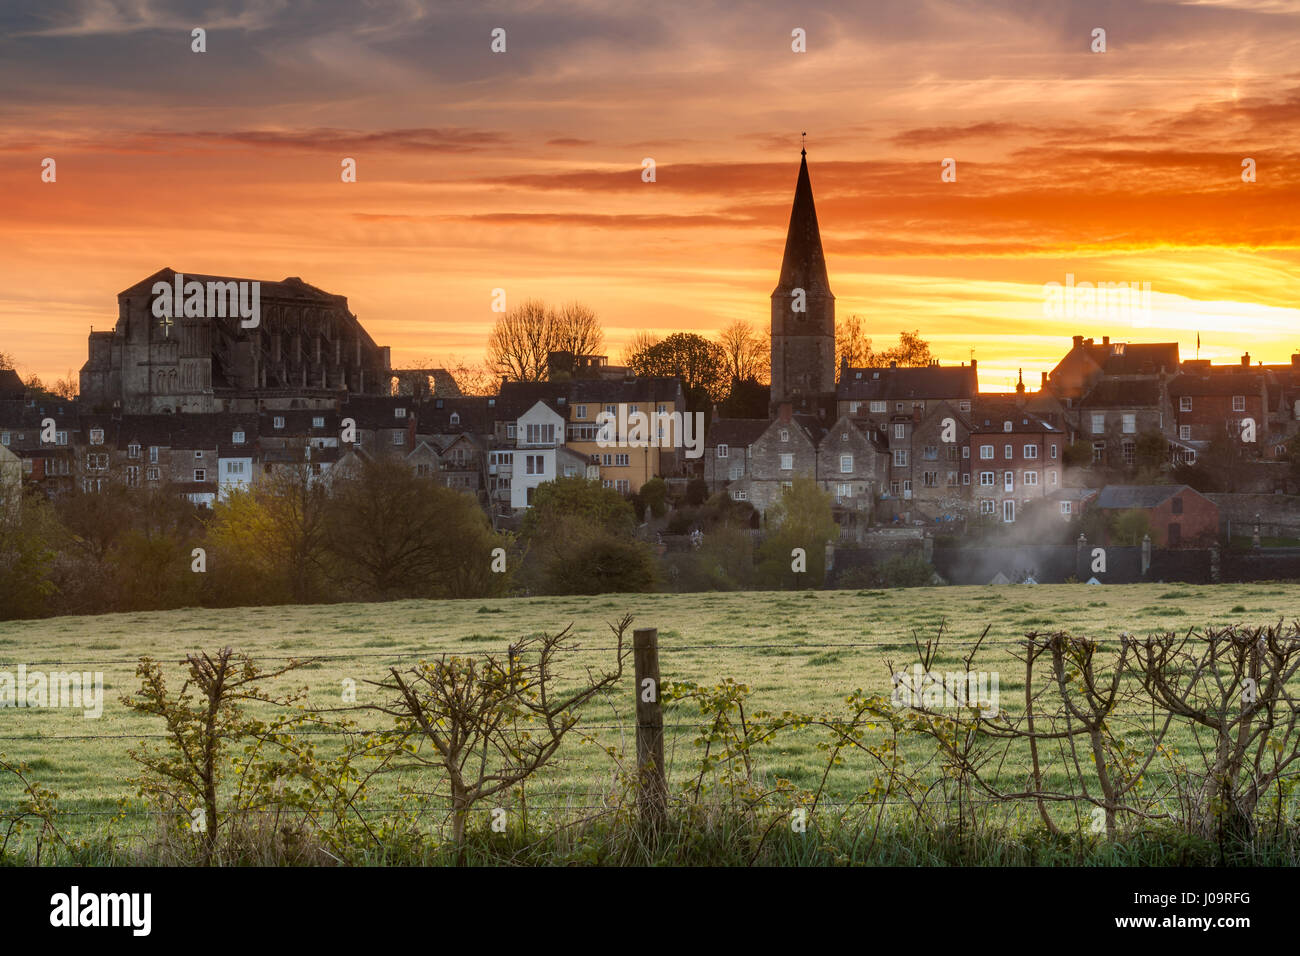 UK Weather - The overnight groundfrost melts away as the sun rises over the Wiltshire hillside town of Malmesbury, Stock Photo